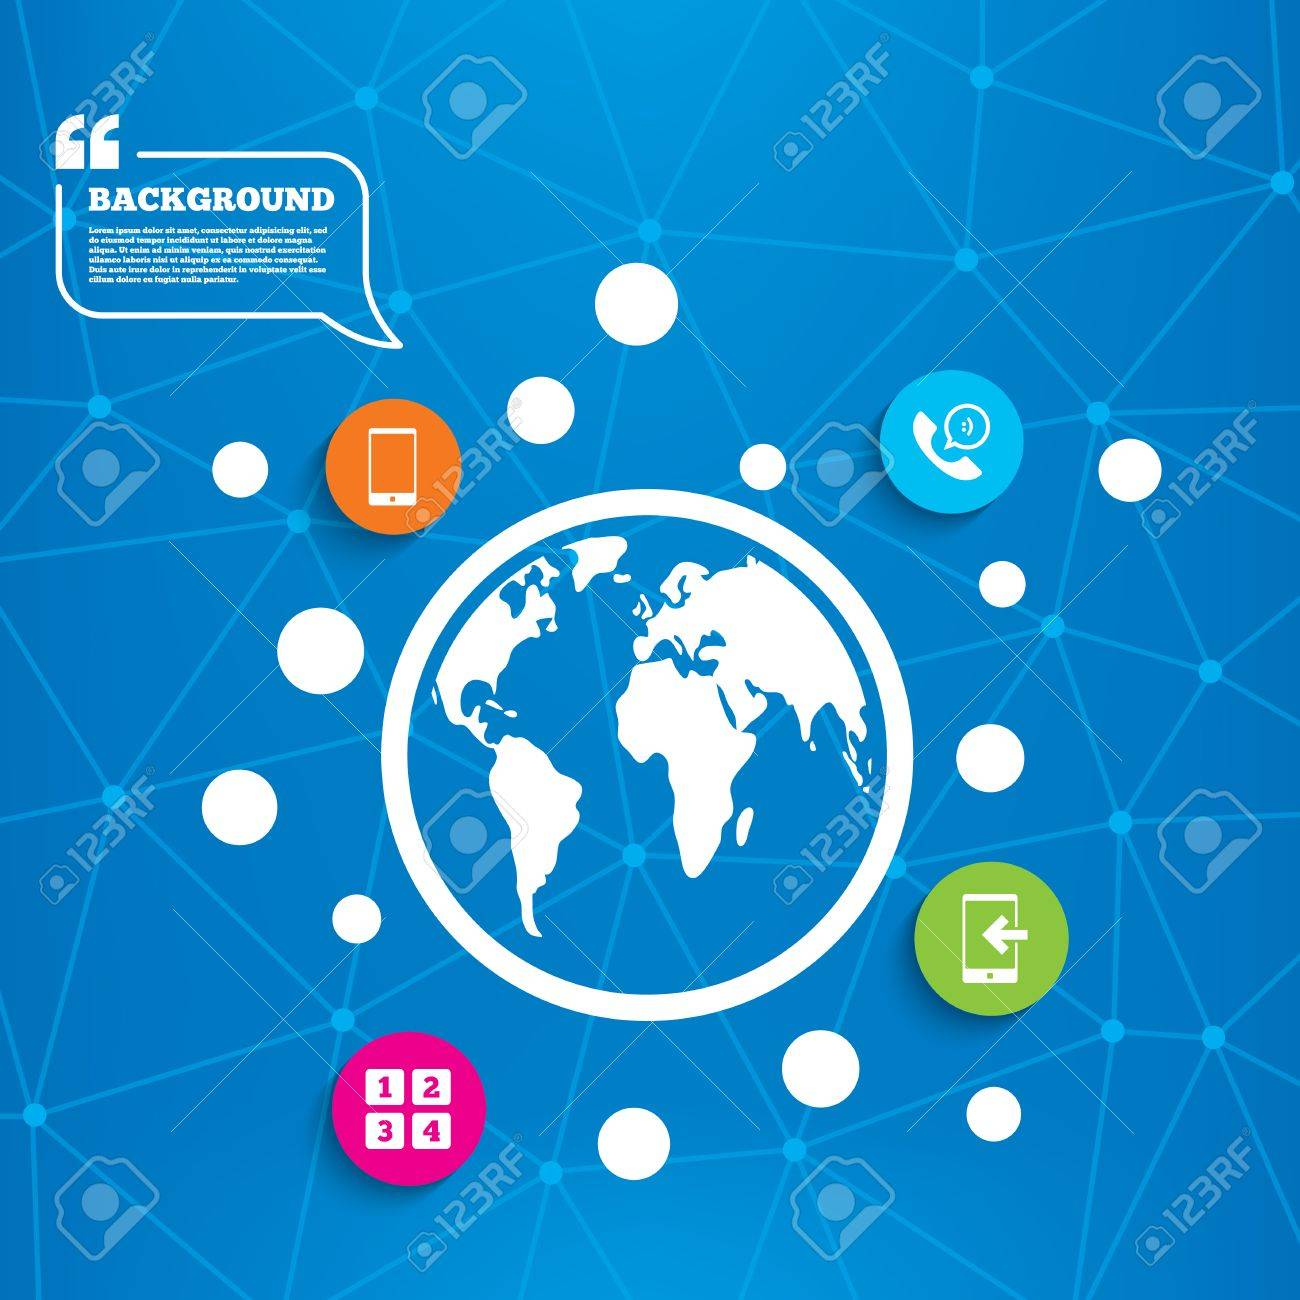 Abstract world globe  Phone icons  Smartphone incoming call sign